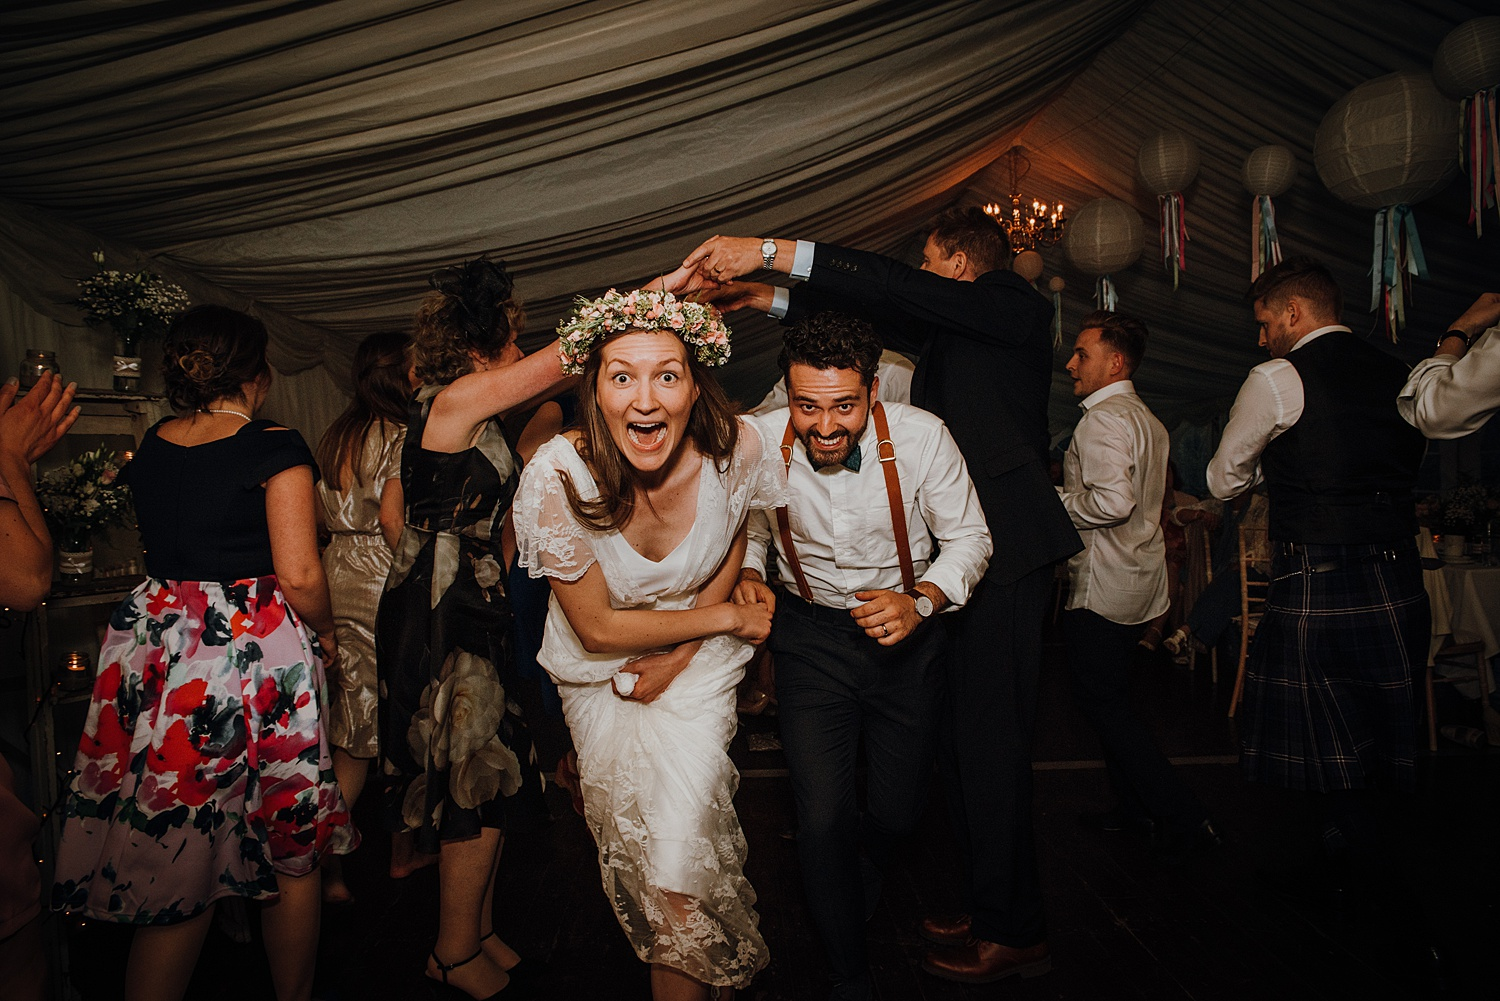 Claire-Fleck-Scottish-wedding-photography-2017__0024.jpg